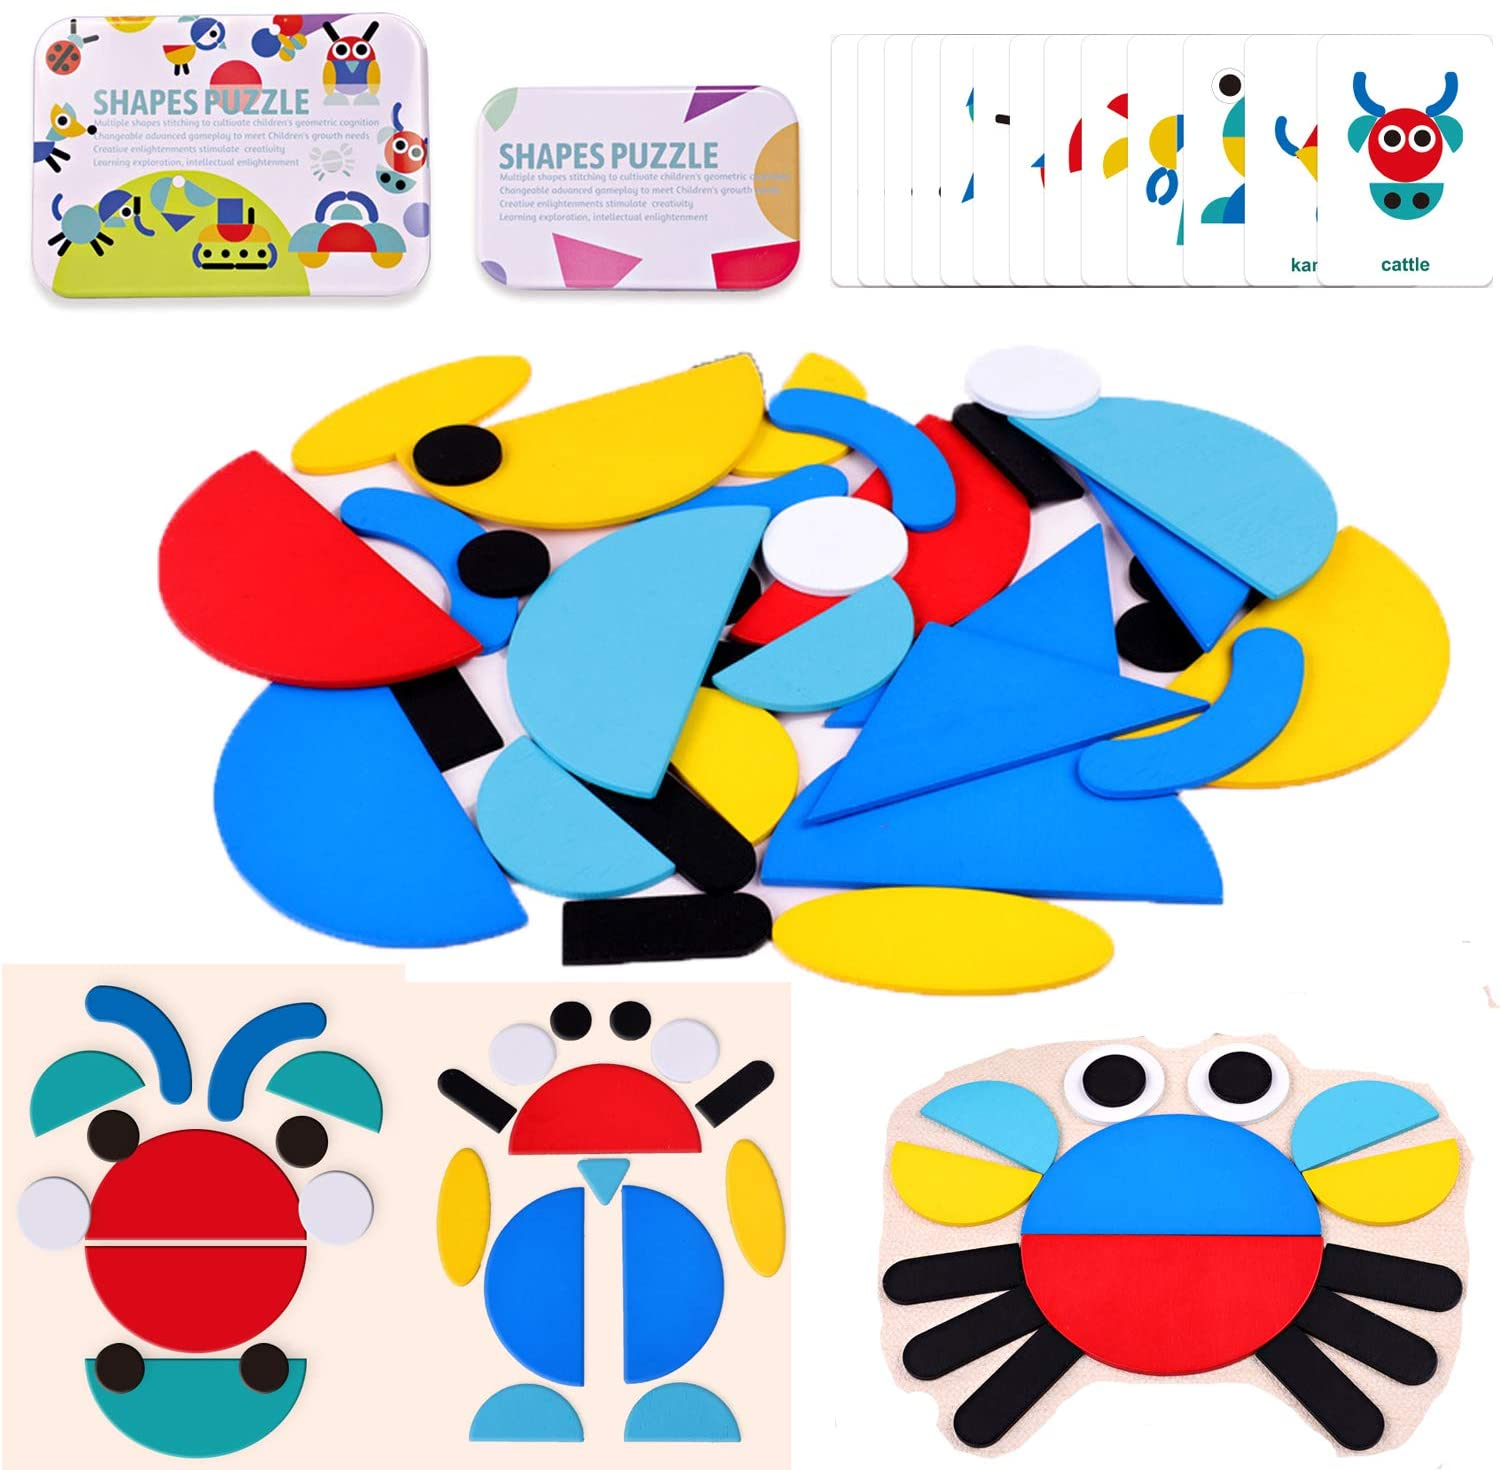 Wooden Pattern Blocks Animal Jigsaw Puzzle Geometric Shapes Games Montessori Early Educational Toys, Learn Sorting & Stacking for Toddlers Kids Boys Girls Age 2+ 36 Shape Pieces 60 Design Cards